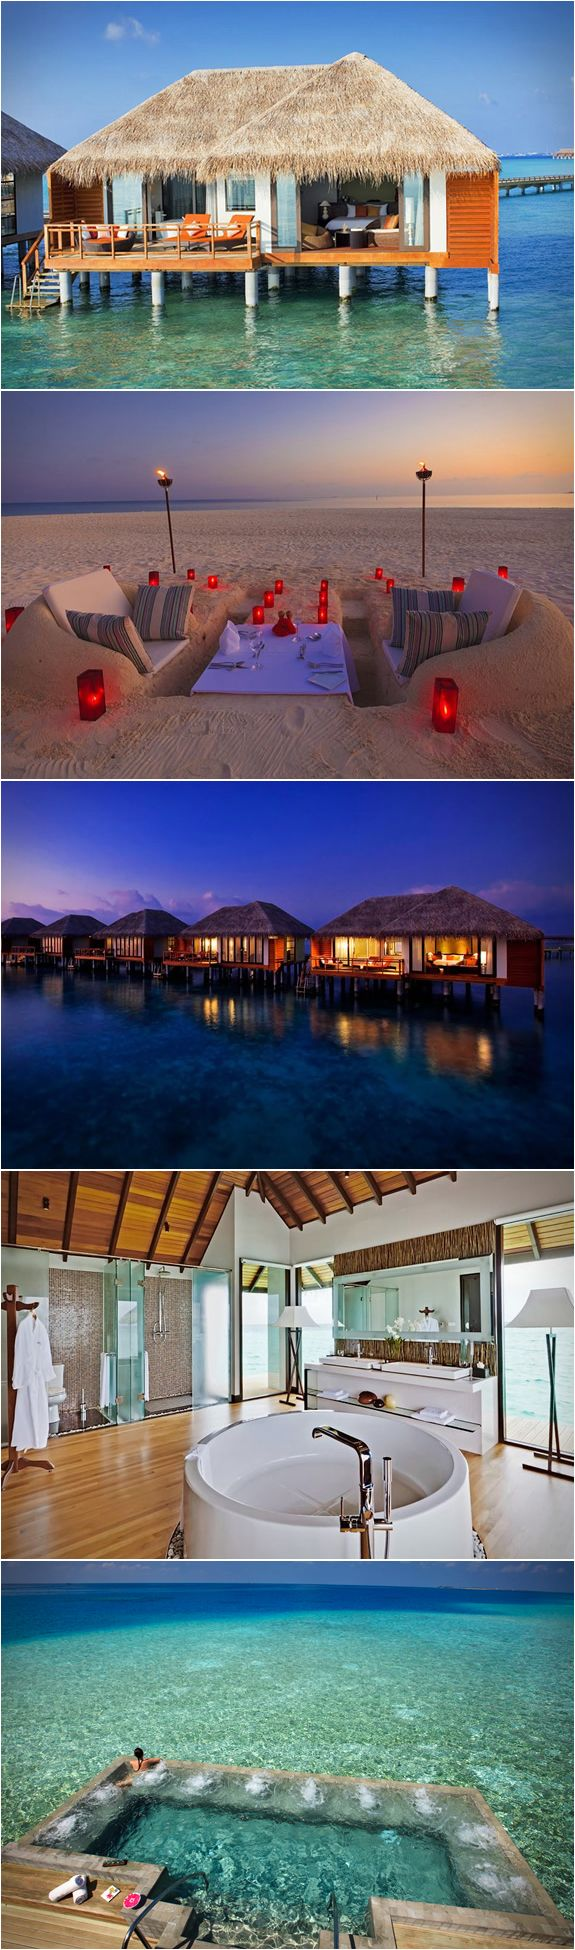 Velassaru Resort, Maldives. Future Honey Moon destination? I think hell yes.